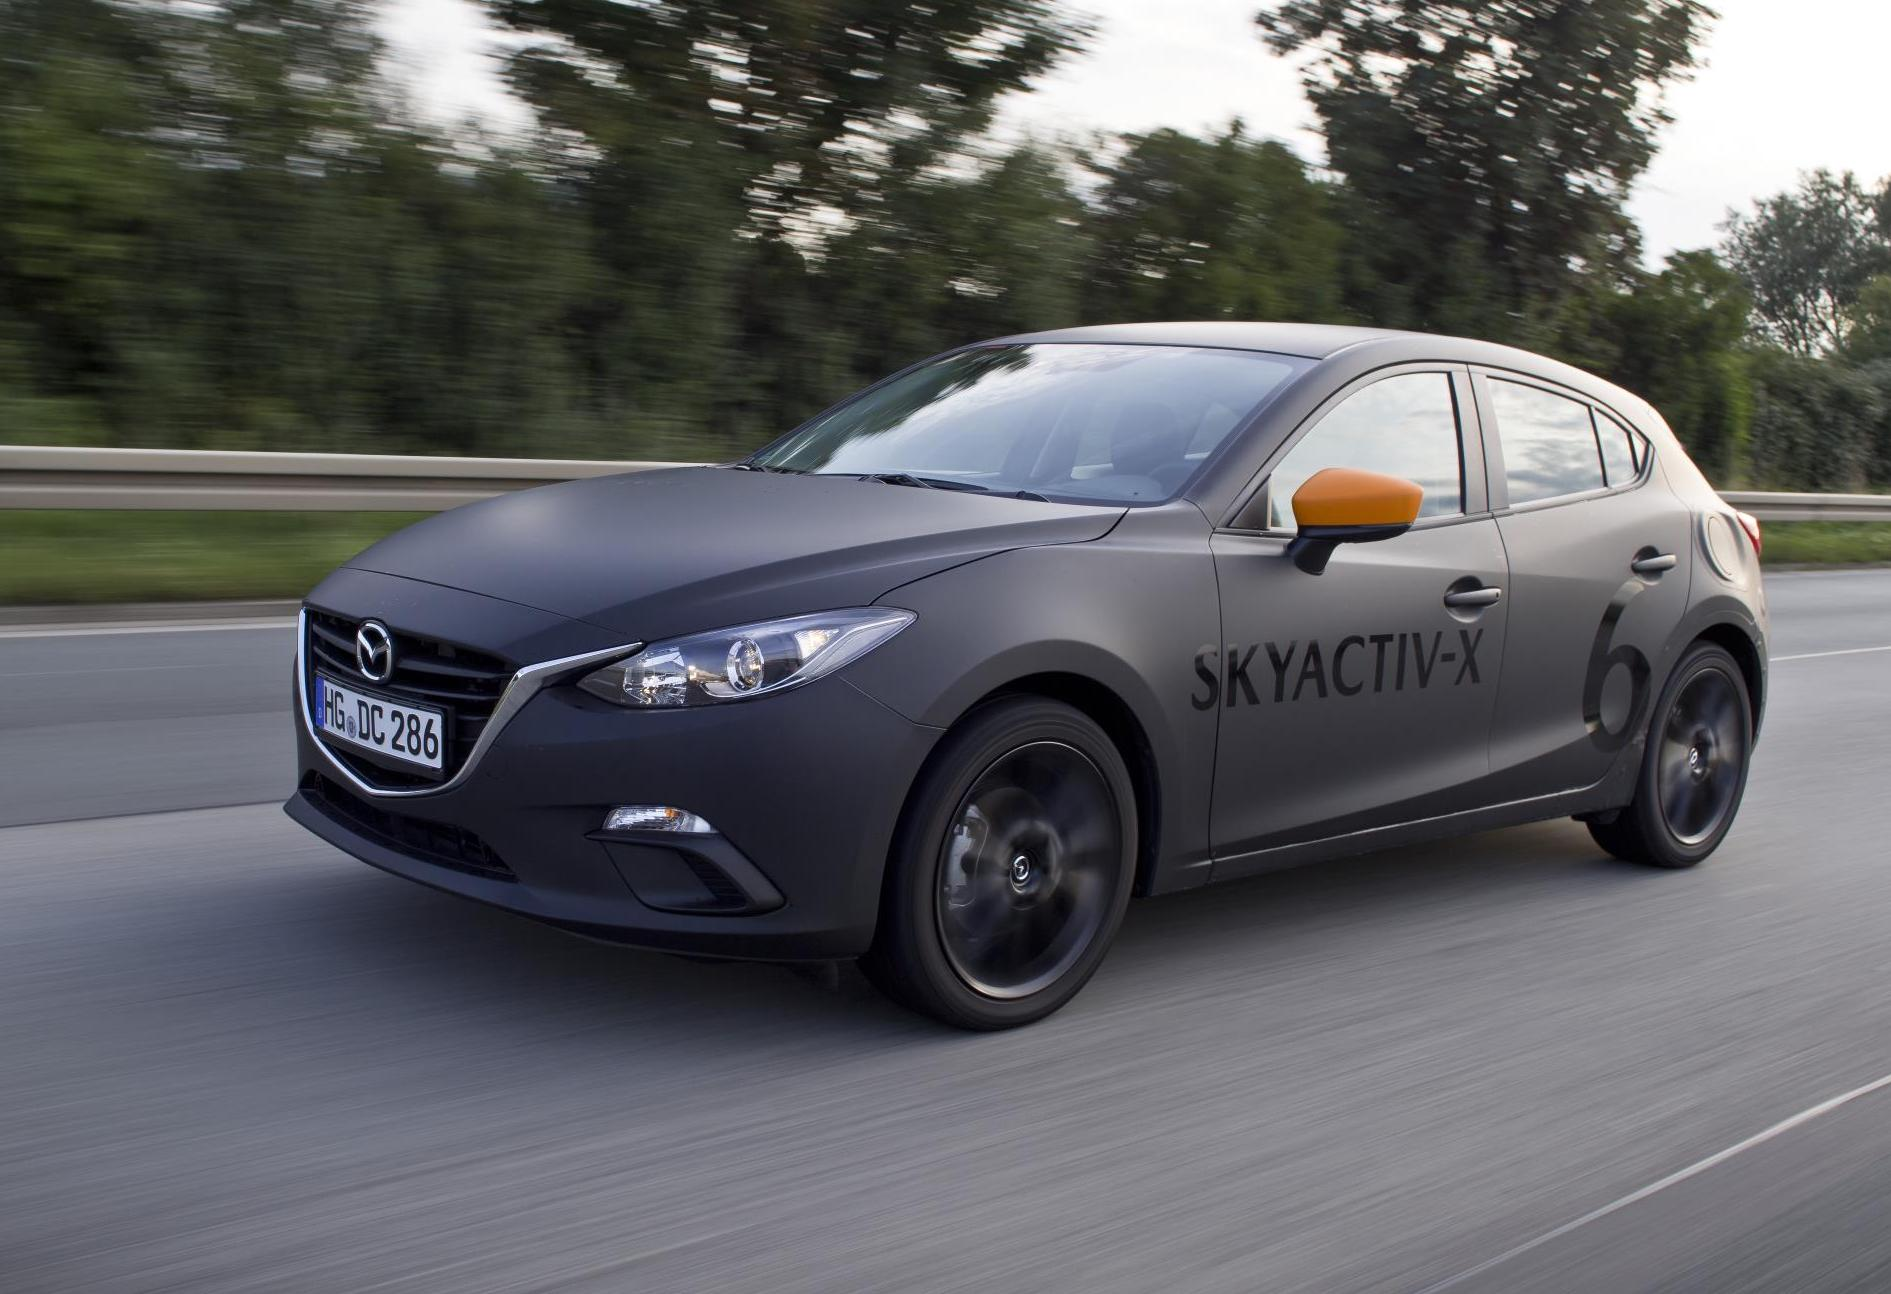 mazda skyactiv x to form basis for new hybrid tech report performancedrive. Black Bedroom Furniture Sets. Home Design Ideas